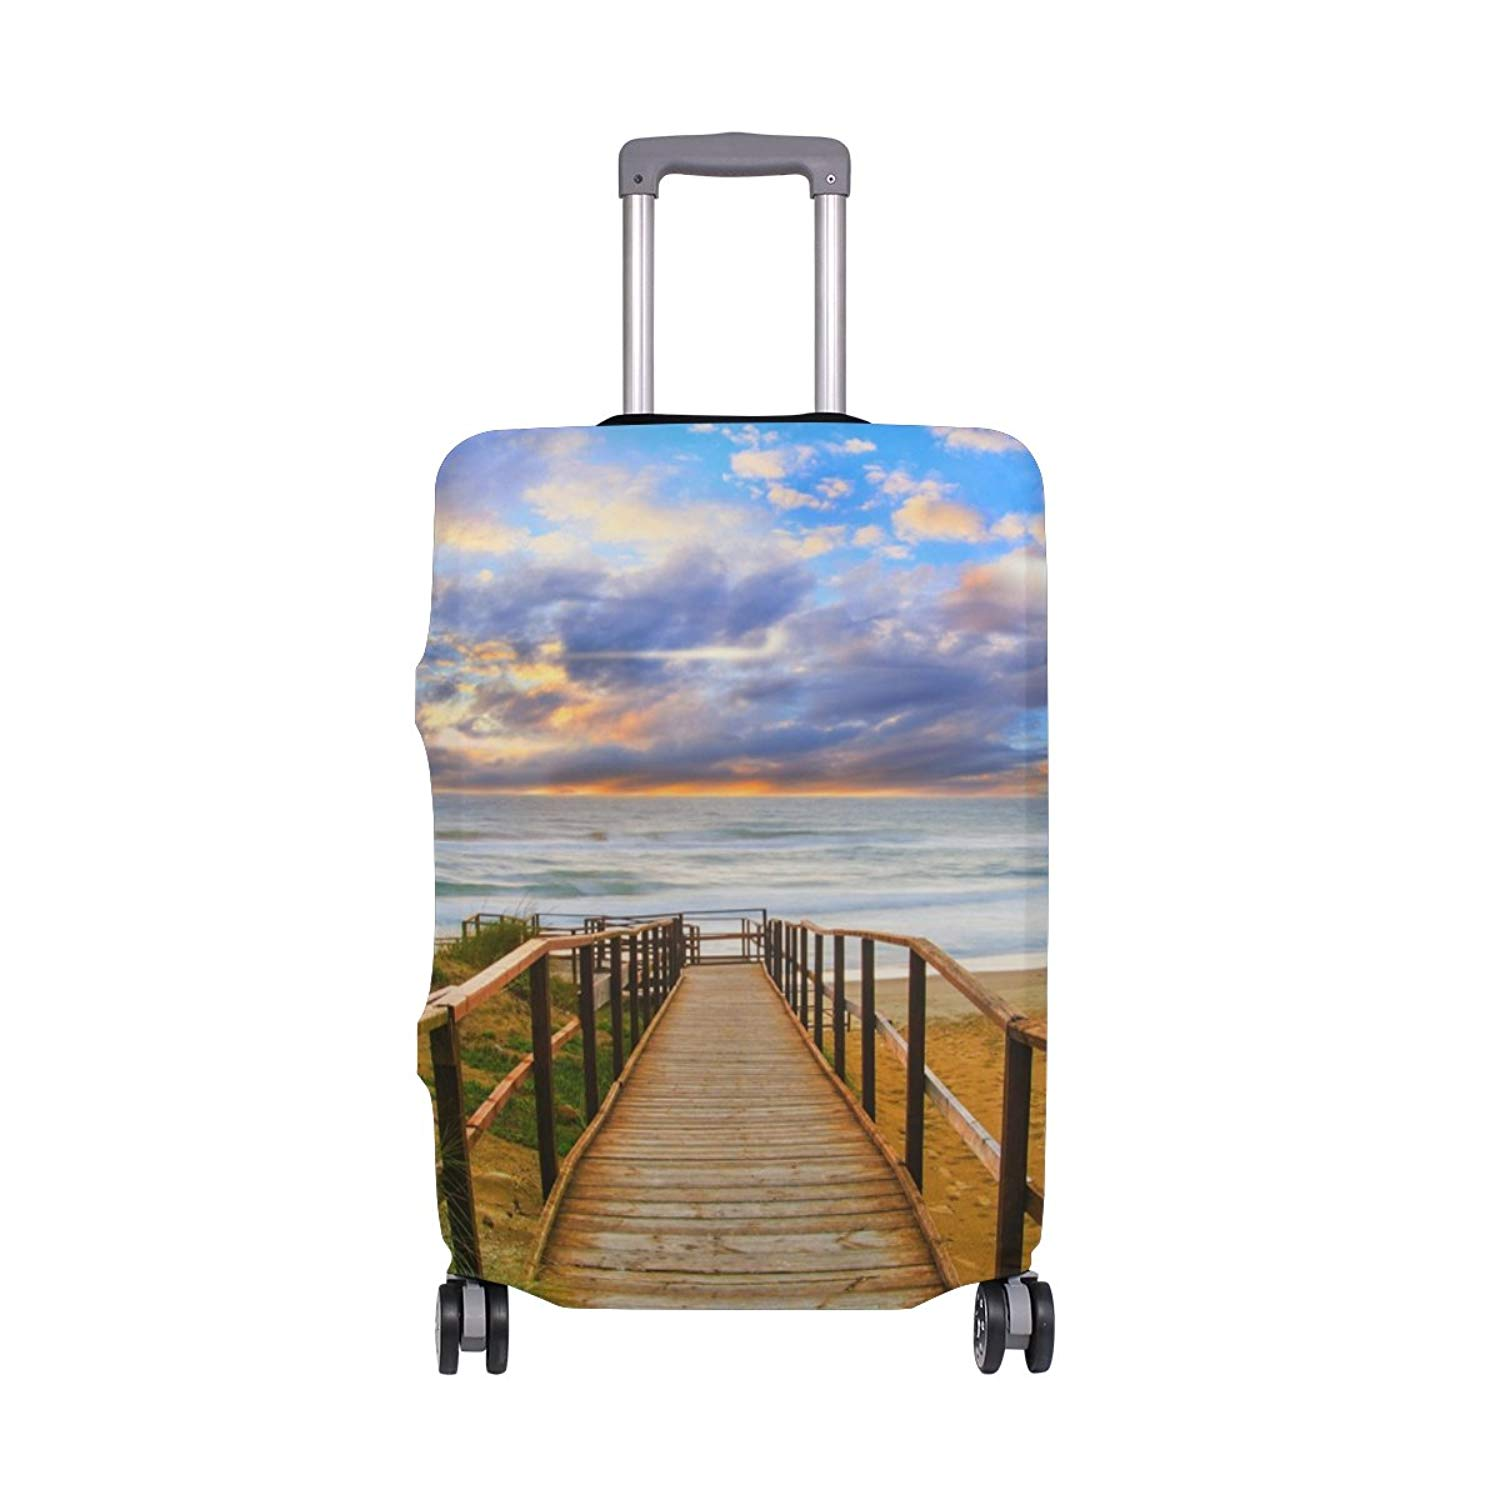 ca40be7679d3 Cheap 32 Inch Suitcase, find 32 Inch Suitcase deals on line at ...